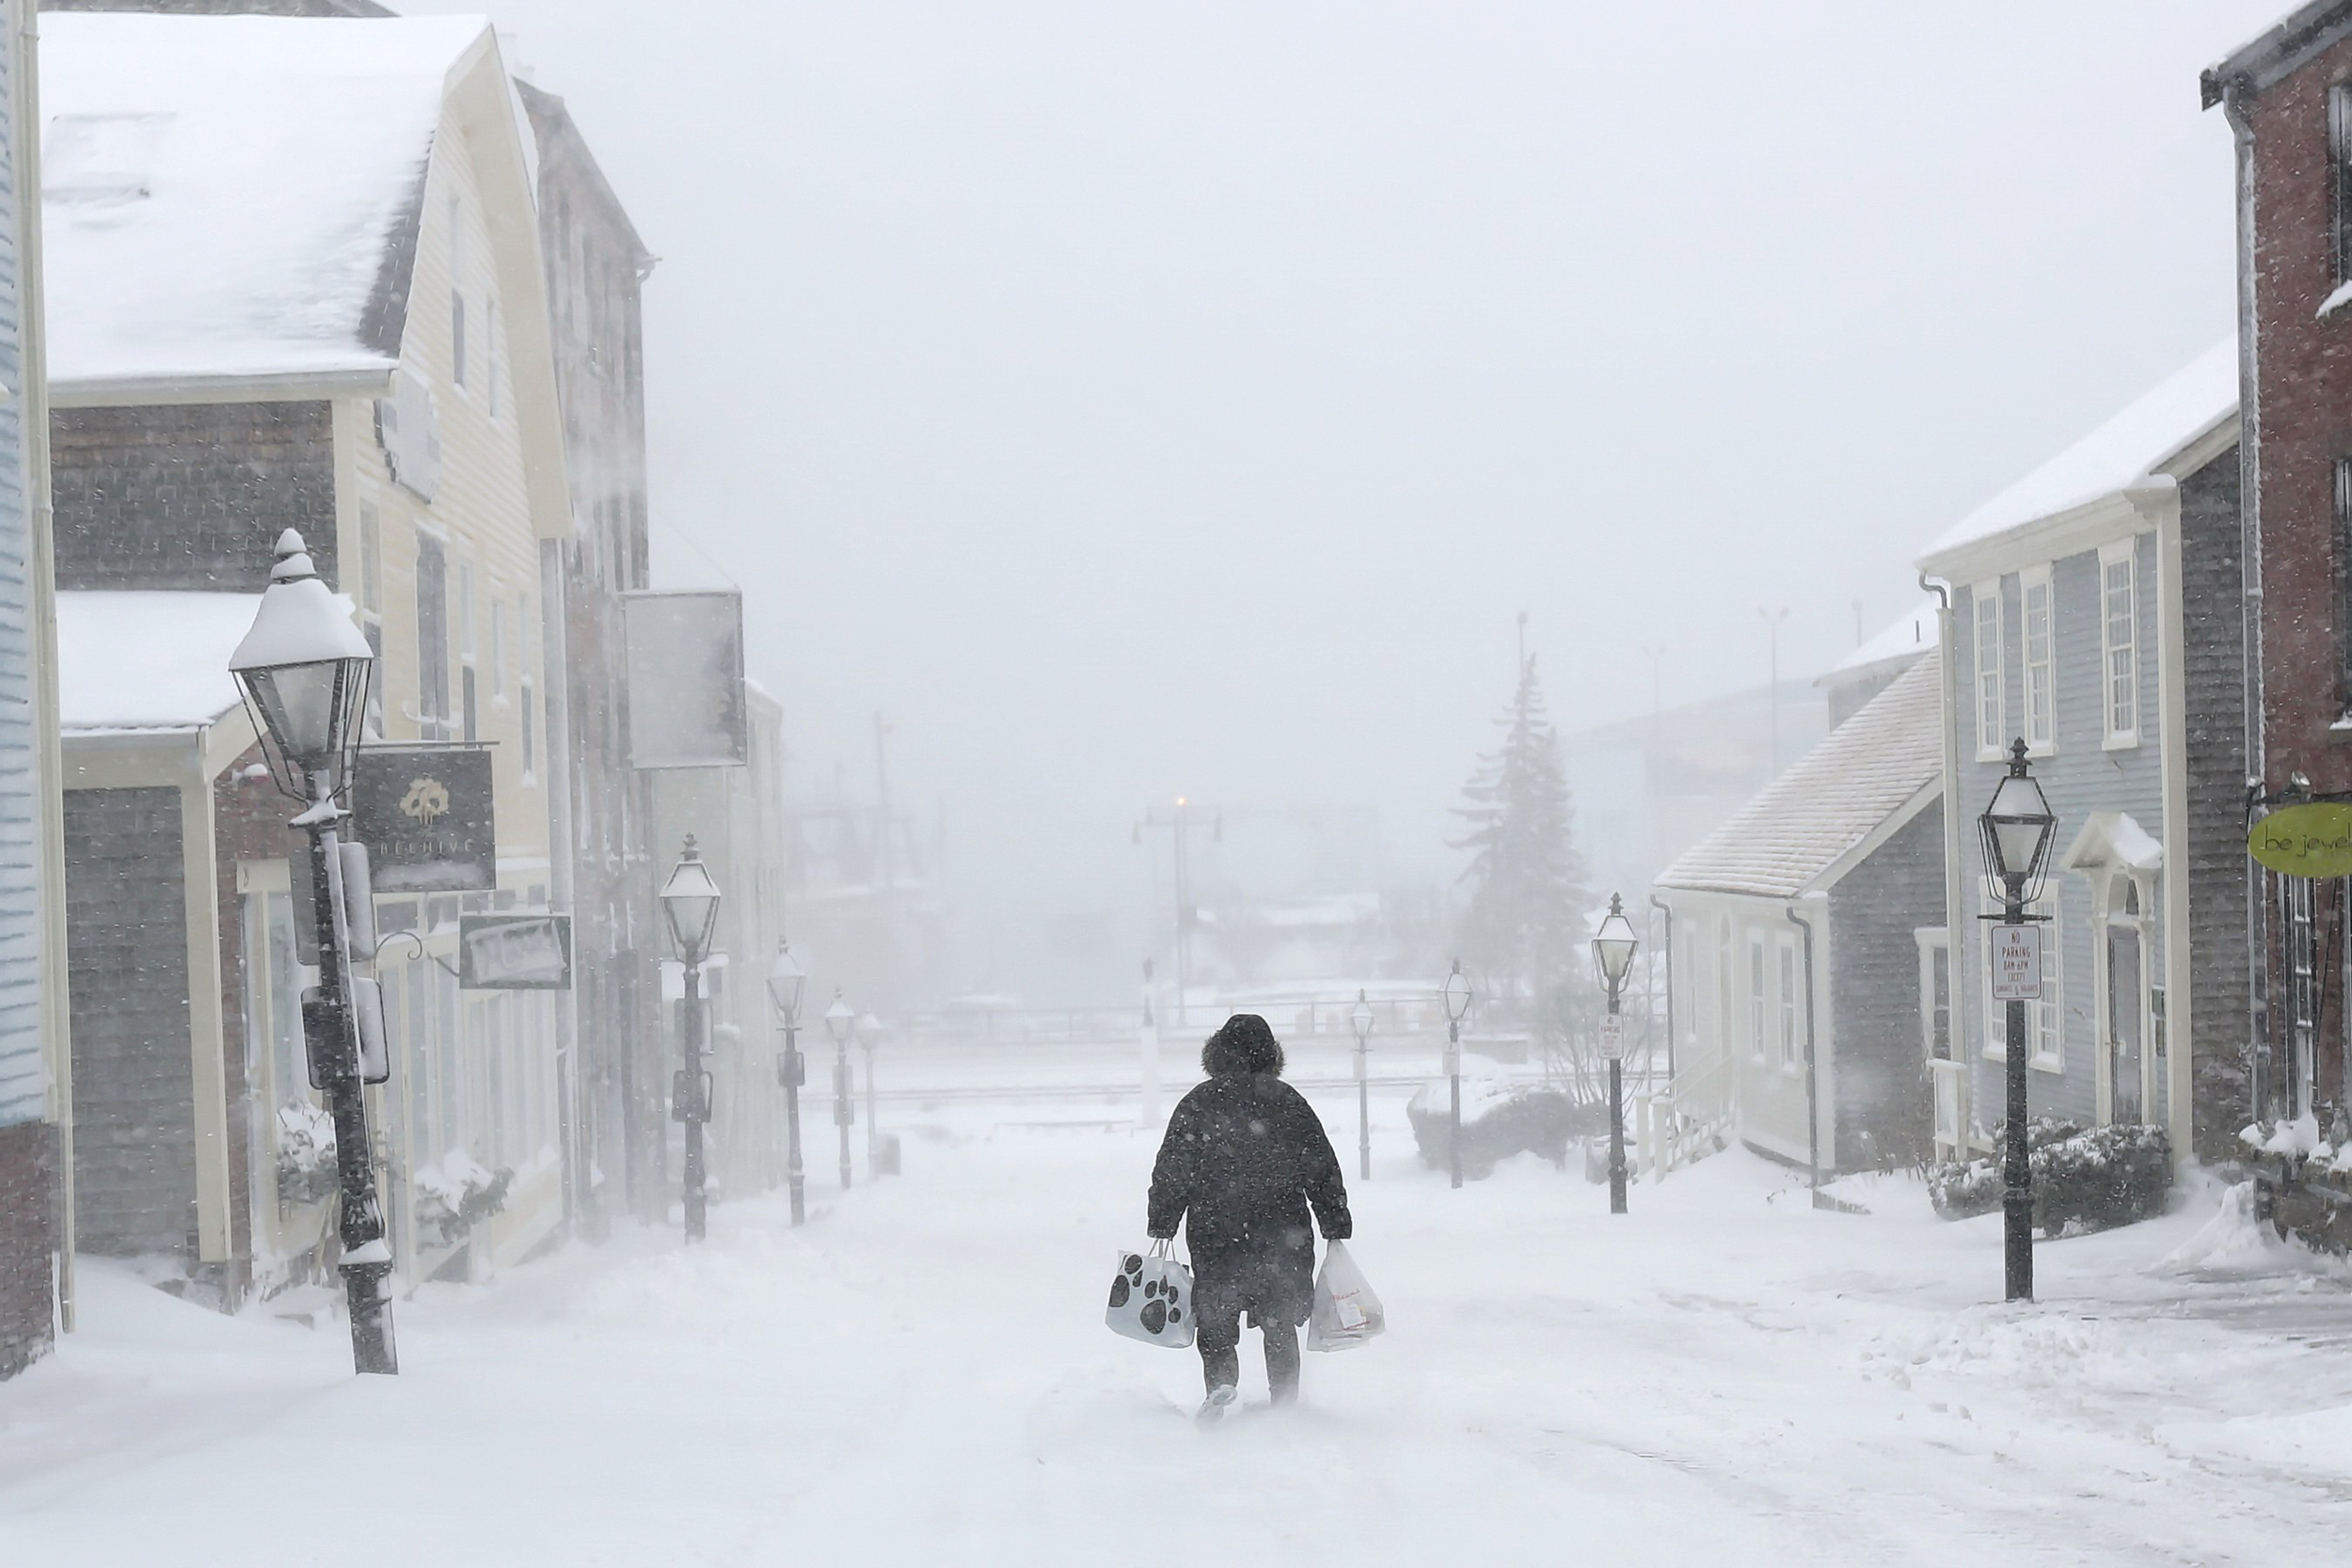 A woman walks down the street during a snowstorm in New Bedford, Mass., on Feb. 8, 2016.